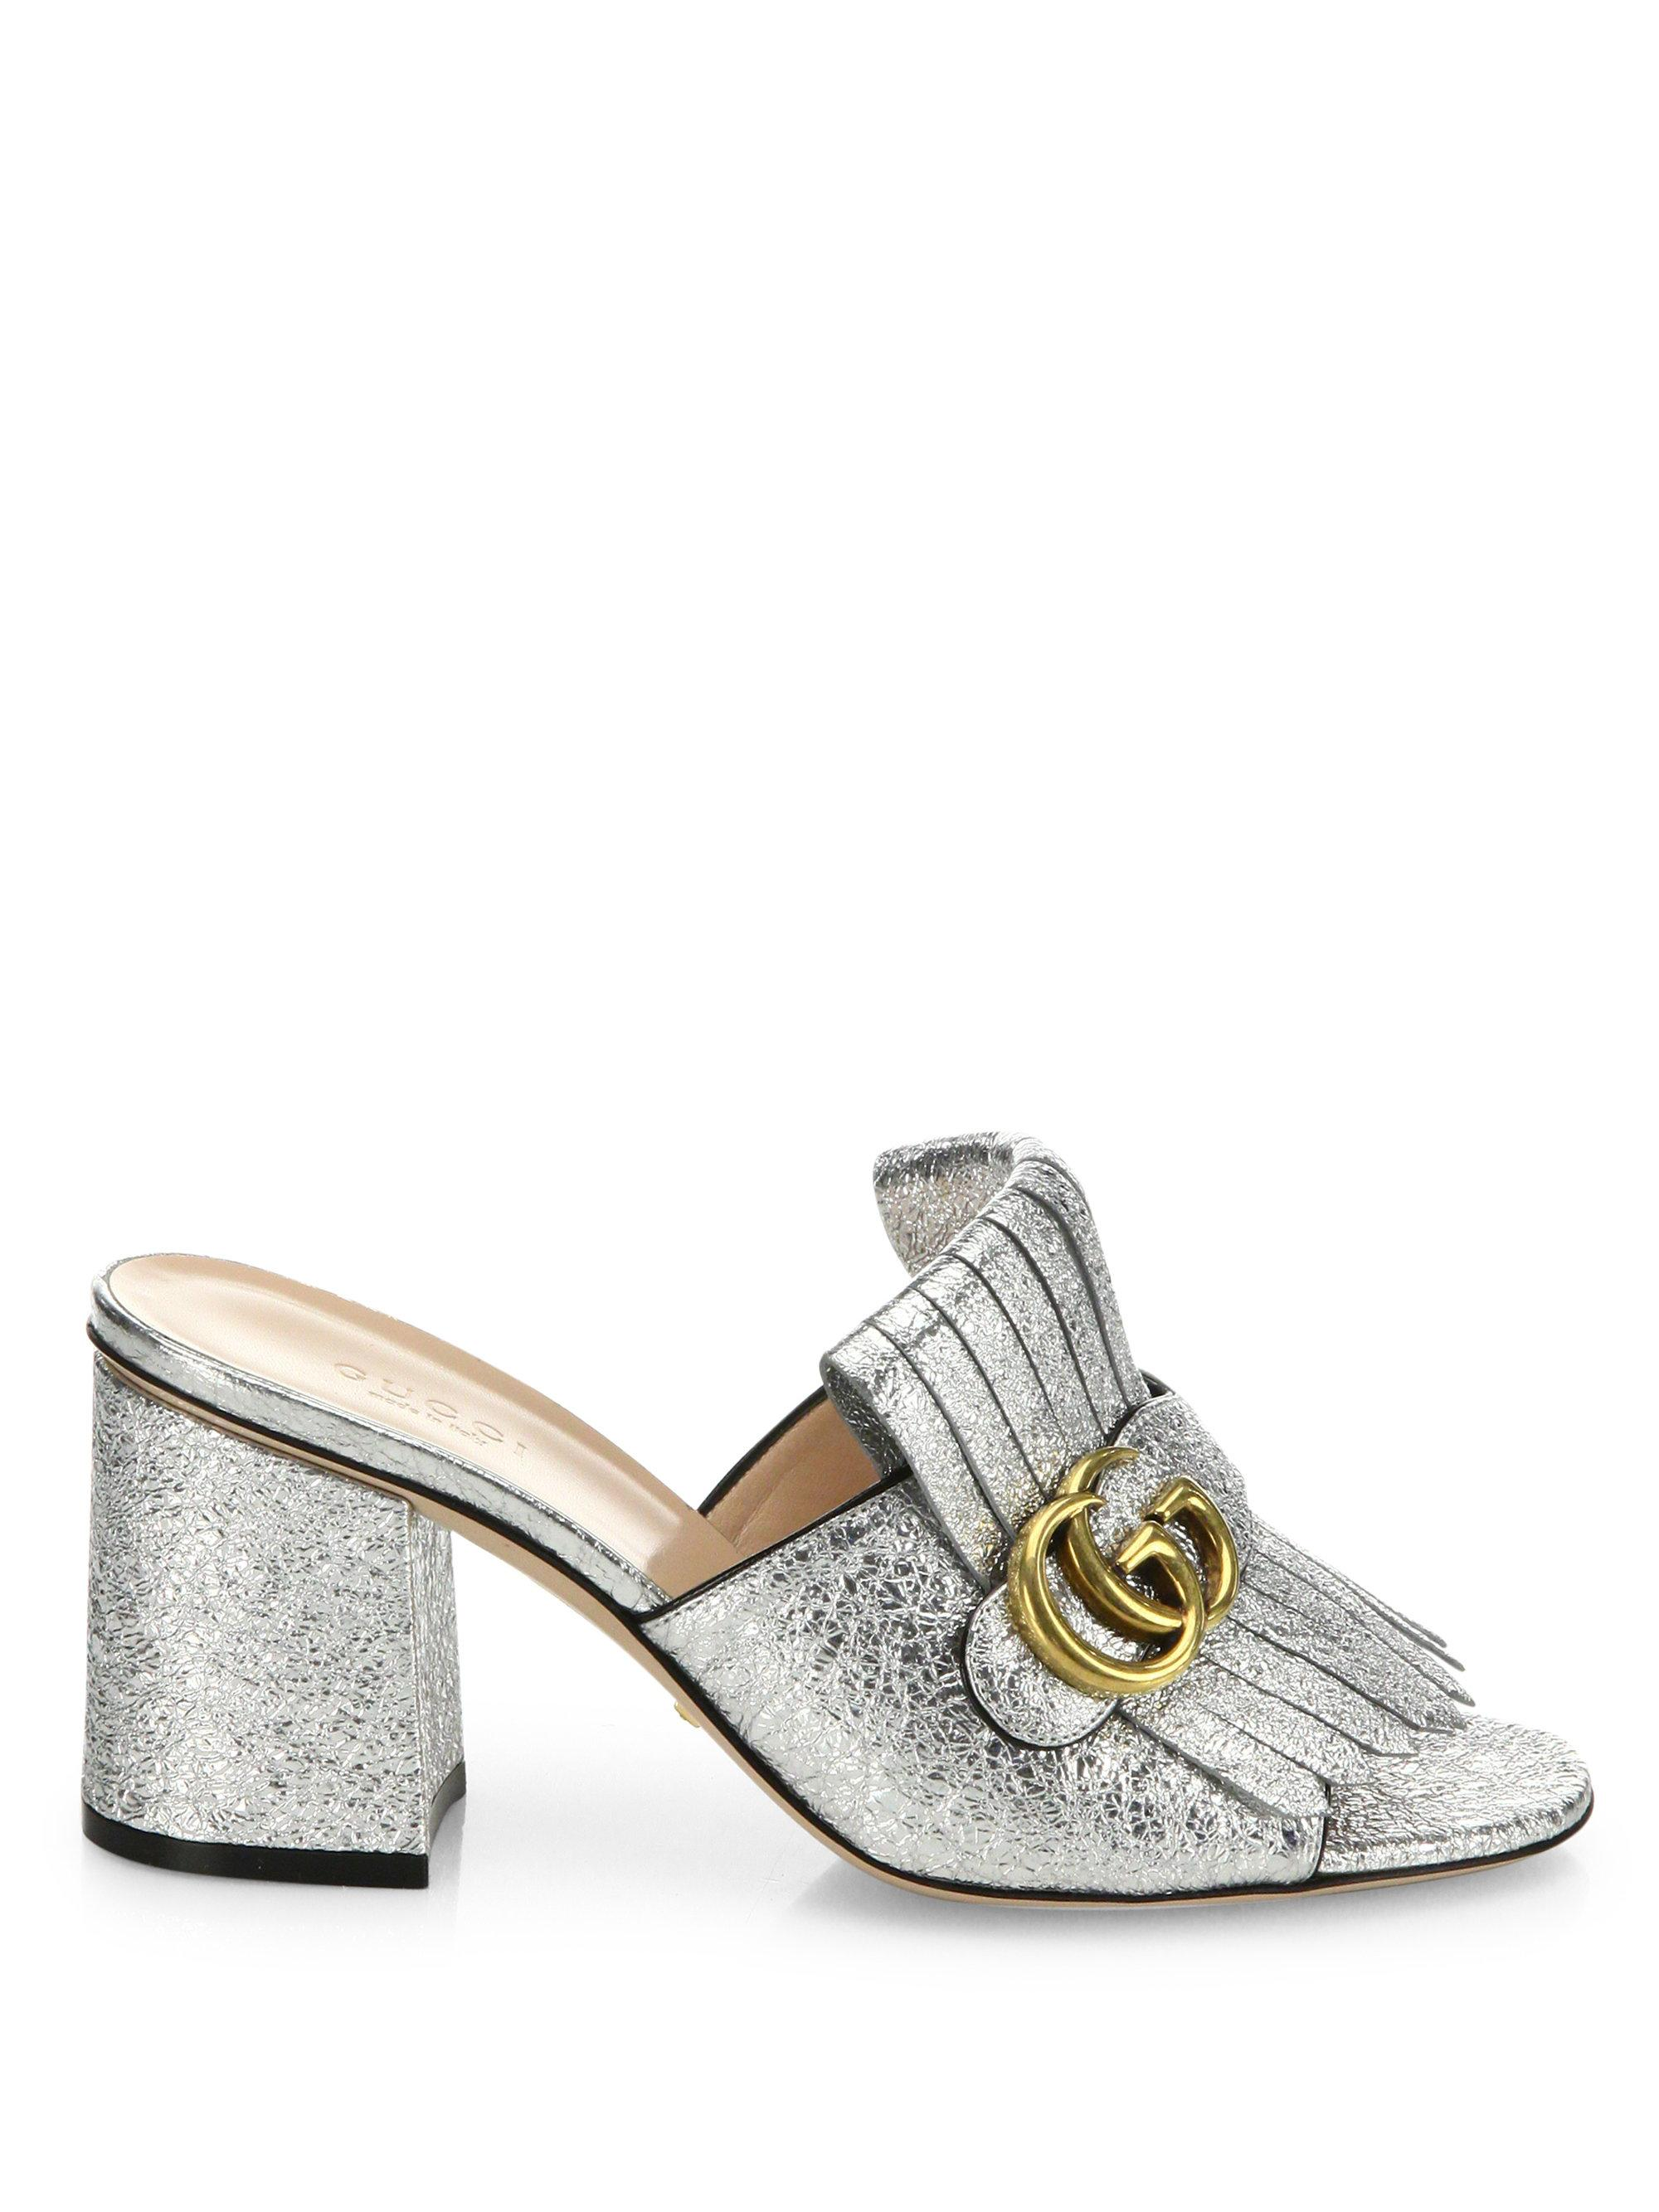 bf439667101bec Lyst - Gucci Marmont Gg Kiltie Metallic Leather Block Heel Mules in ...